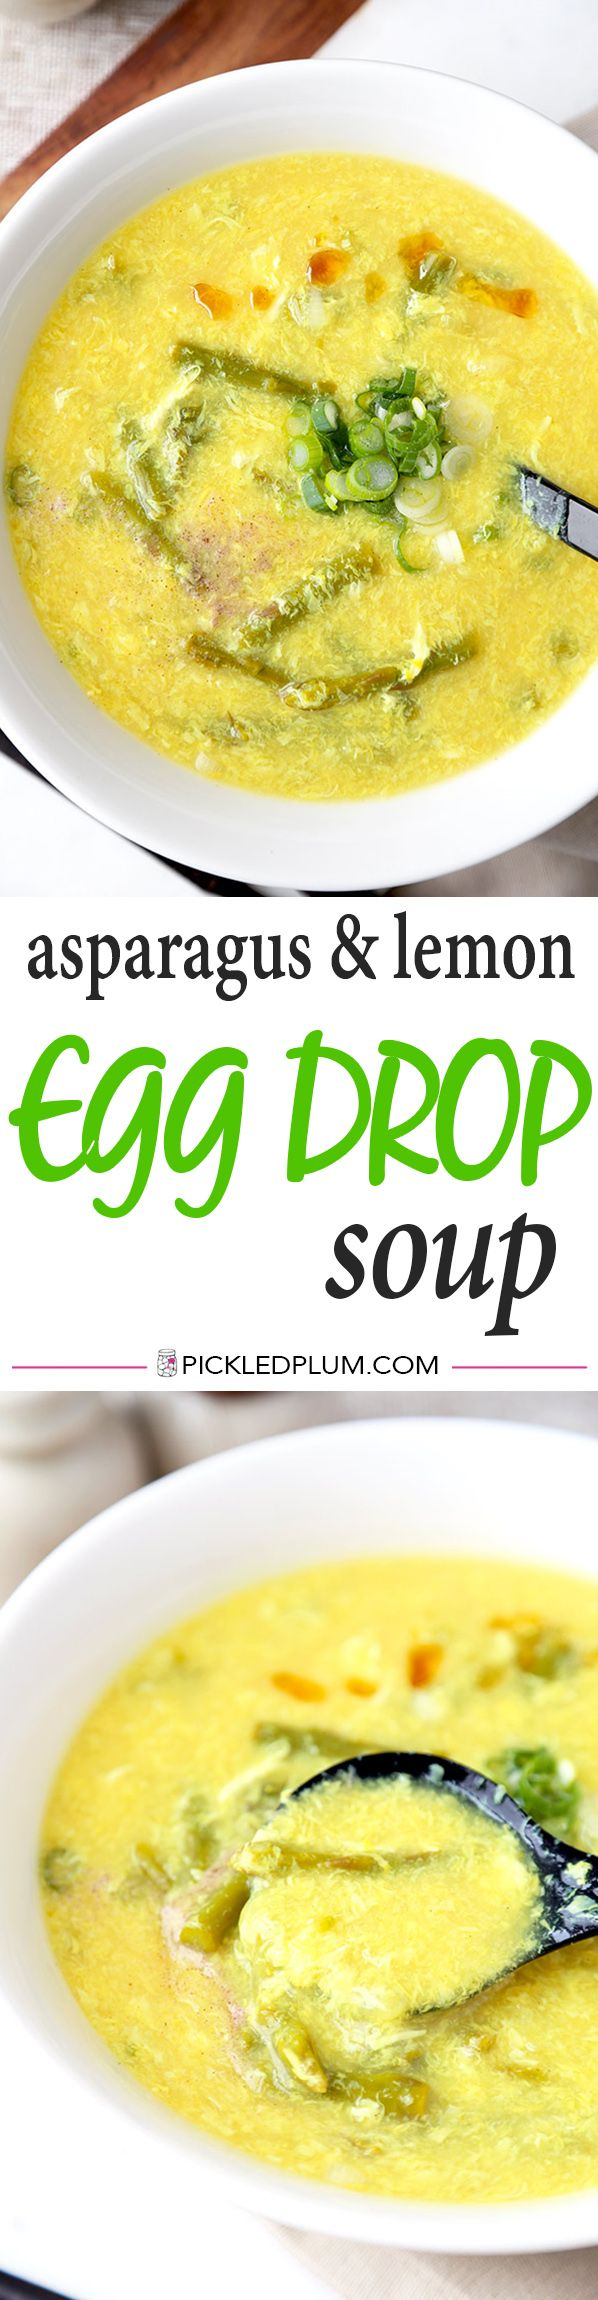 Asparagus and Lemon Egg Drop Soup